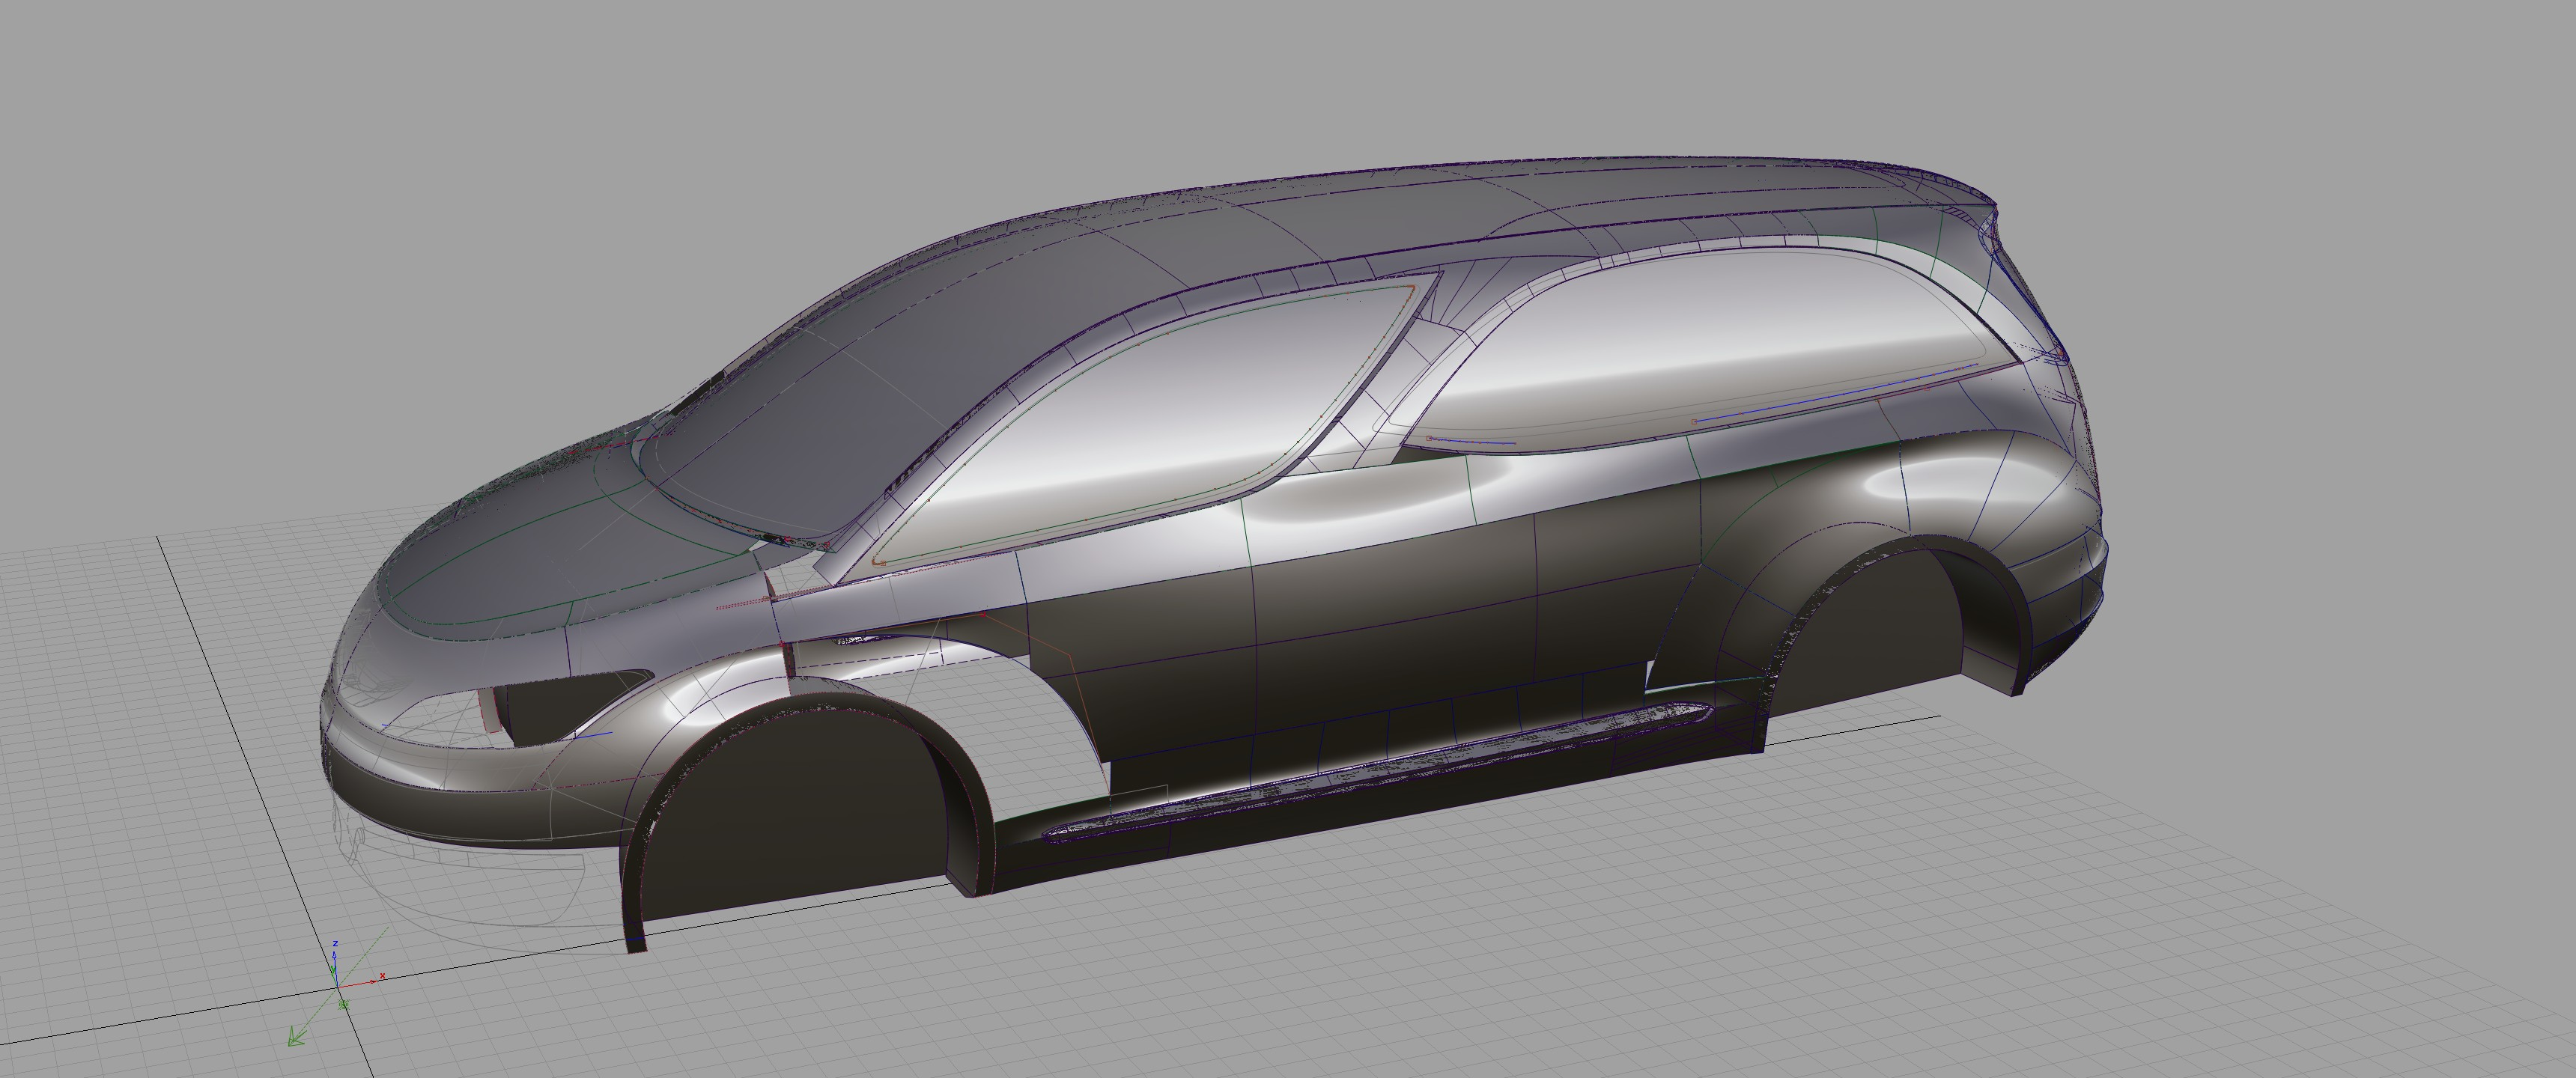 Alias A Class Surfacing Foresee Car Design